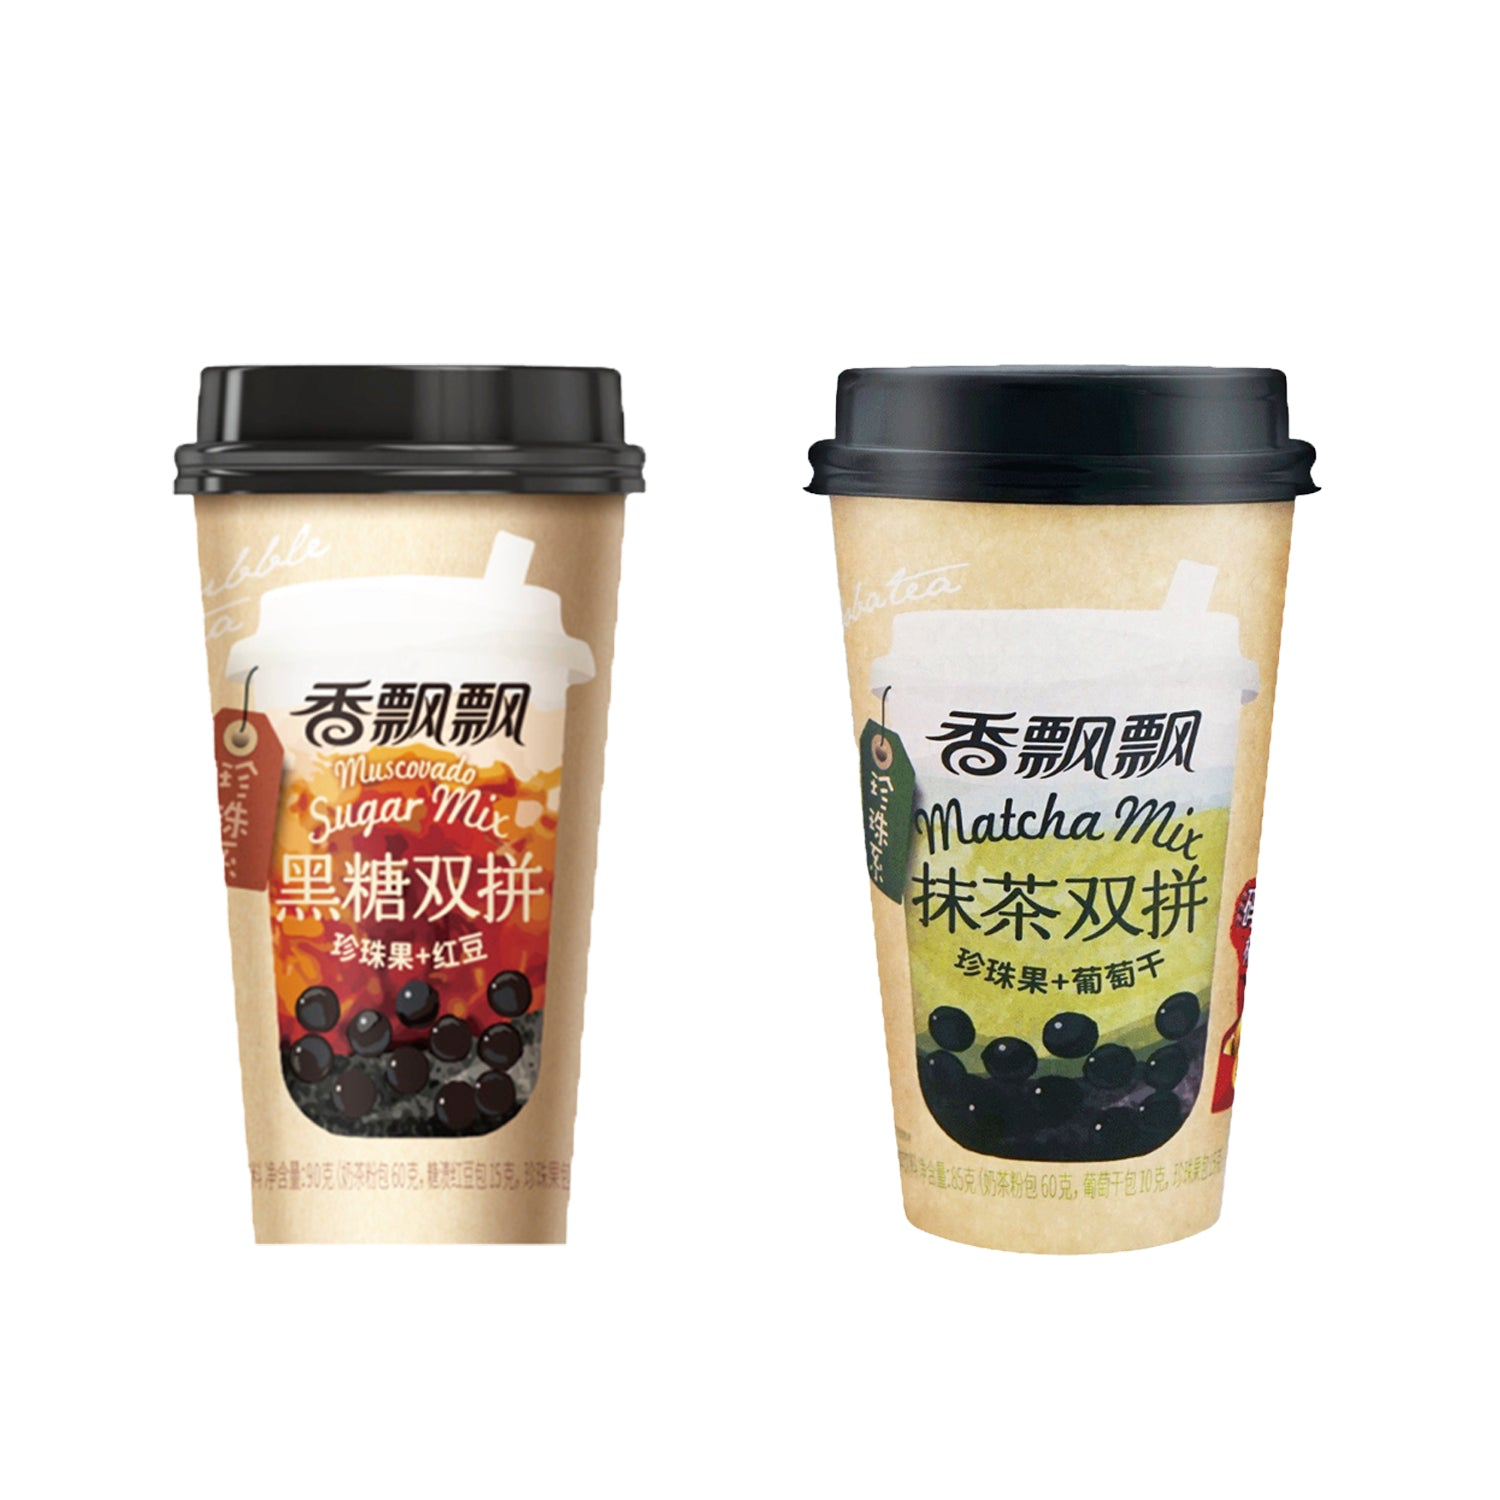 XiangPiaoPiao Brown Sugar Milk Tea - 2 For $2.99